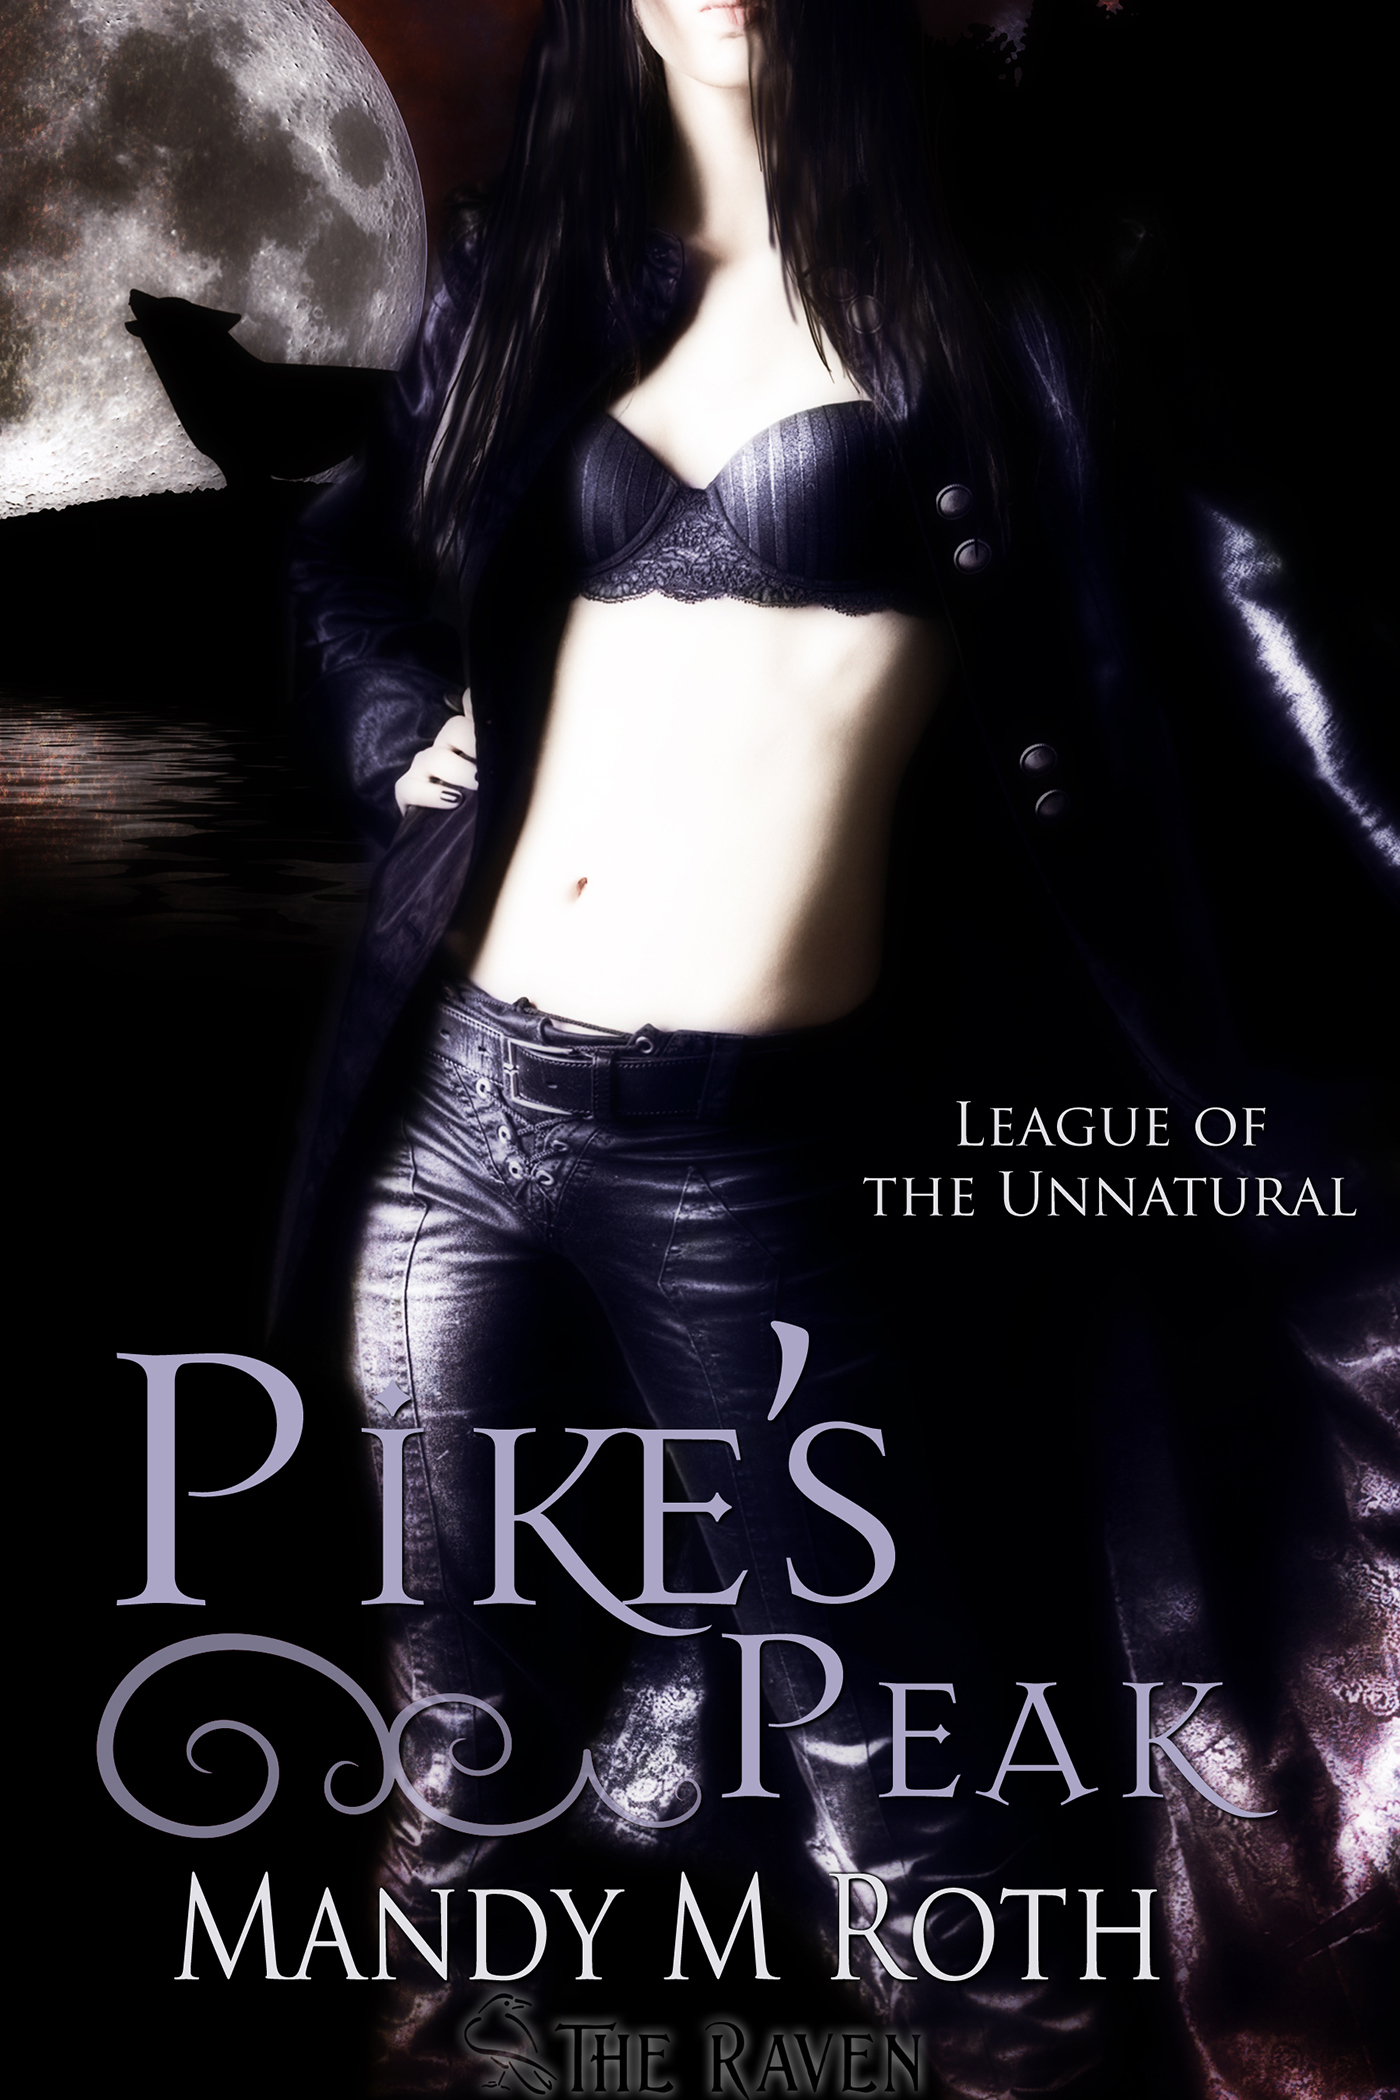 Pike's Peak (League of the Unnatural) By: Mandy M. Roth